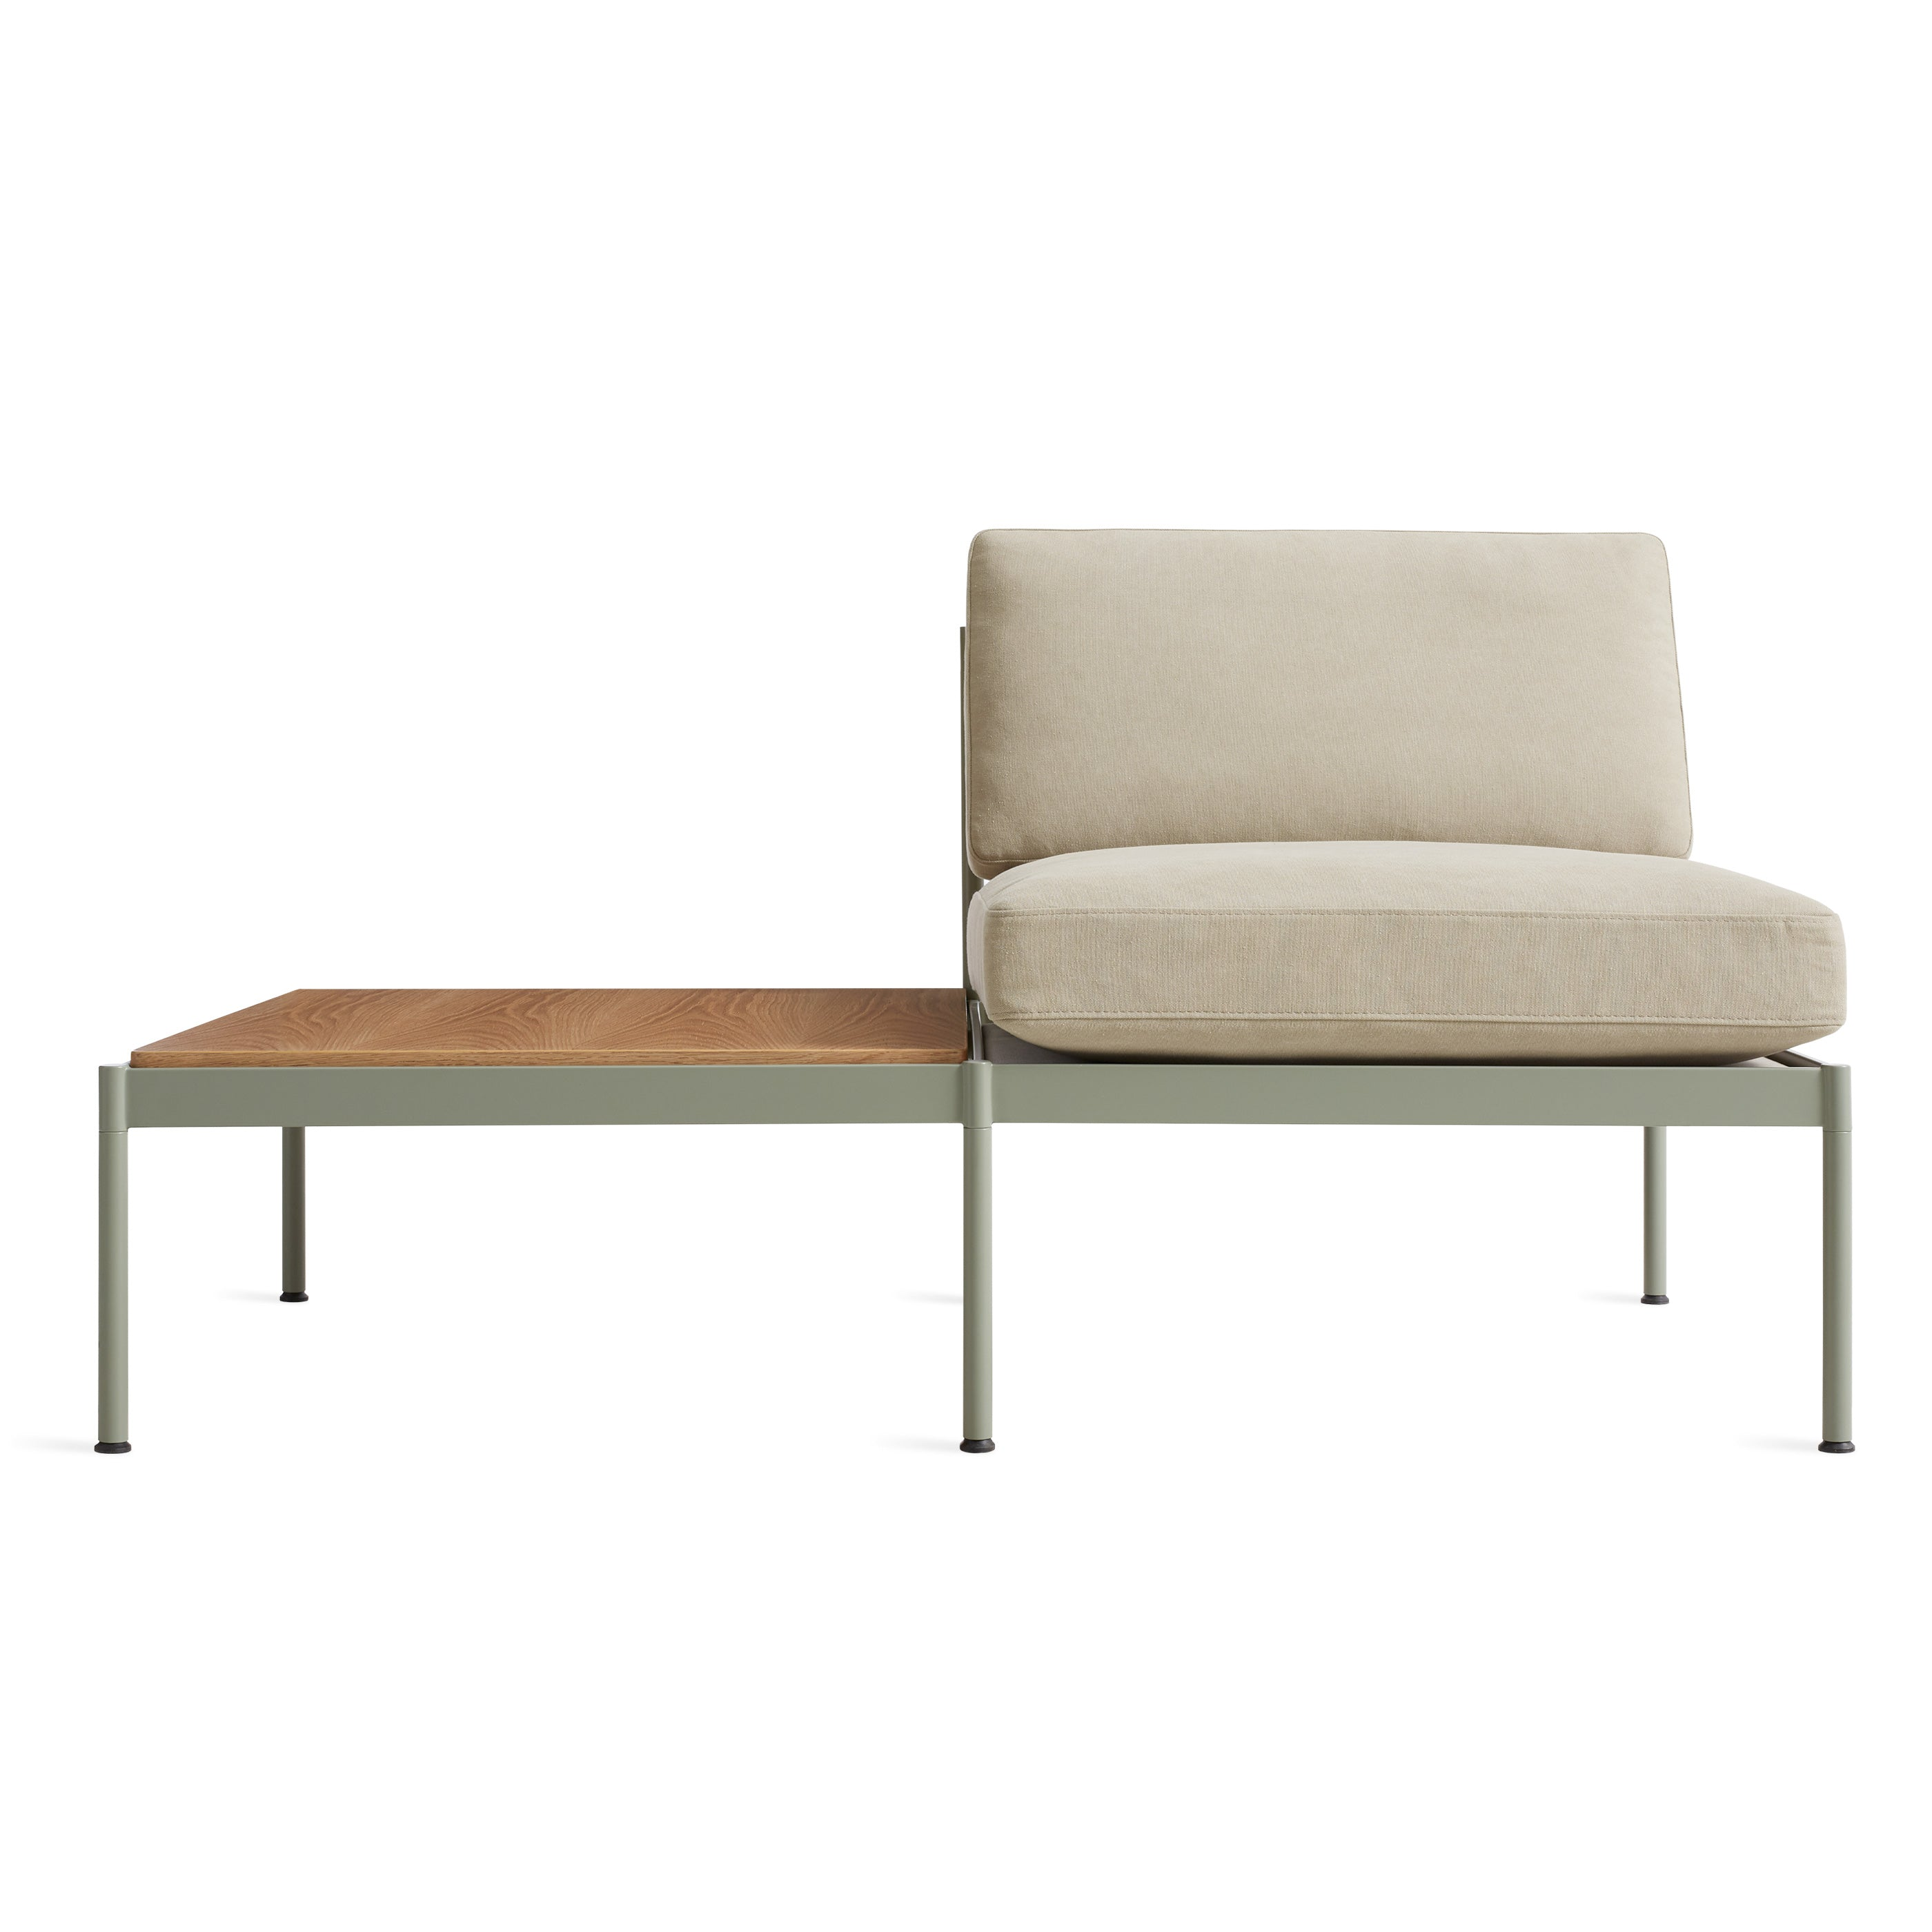 "Chassis 59"" Small Sofa with Table"